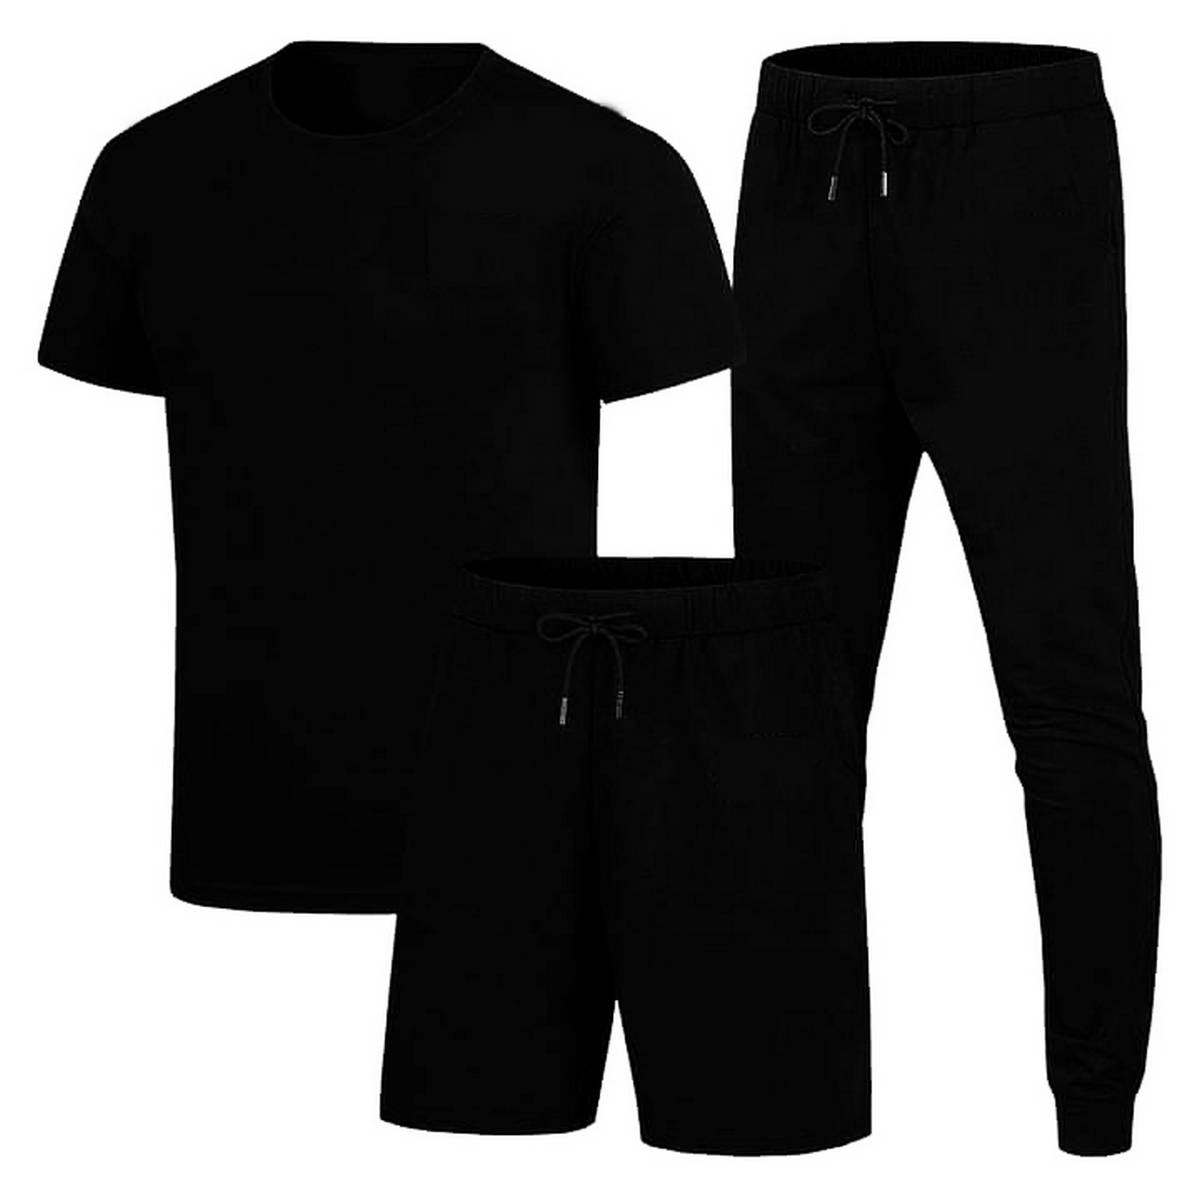 Plain Pack Of 3 New Design Summer Tracksuit Round Neck Half Sleeves T Shirts Top Quality Trouser And Short For Men Boys - Shez Fashion